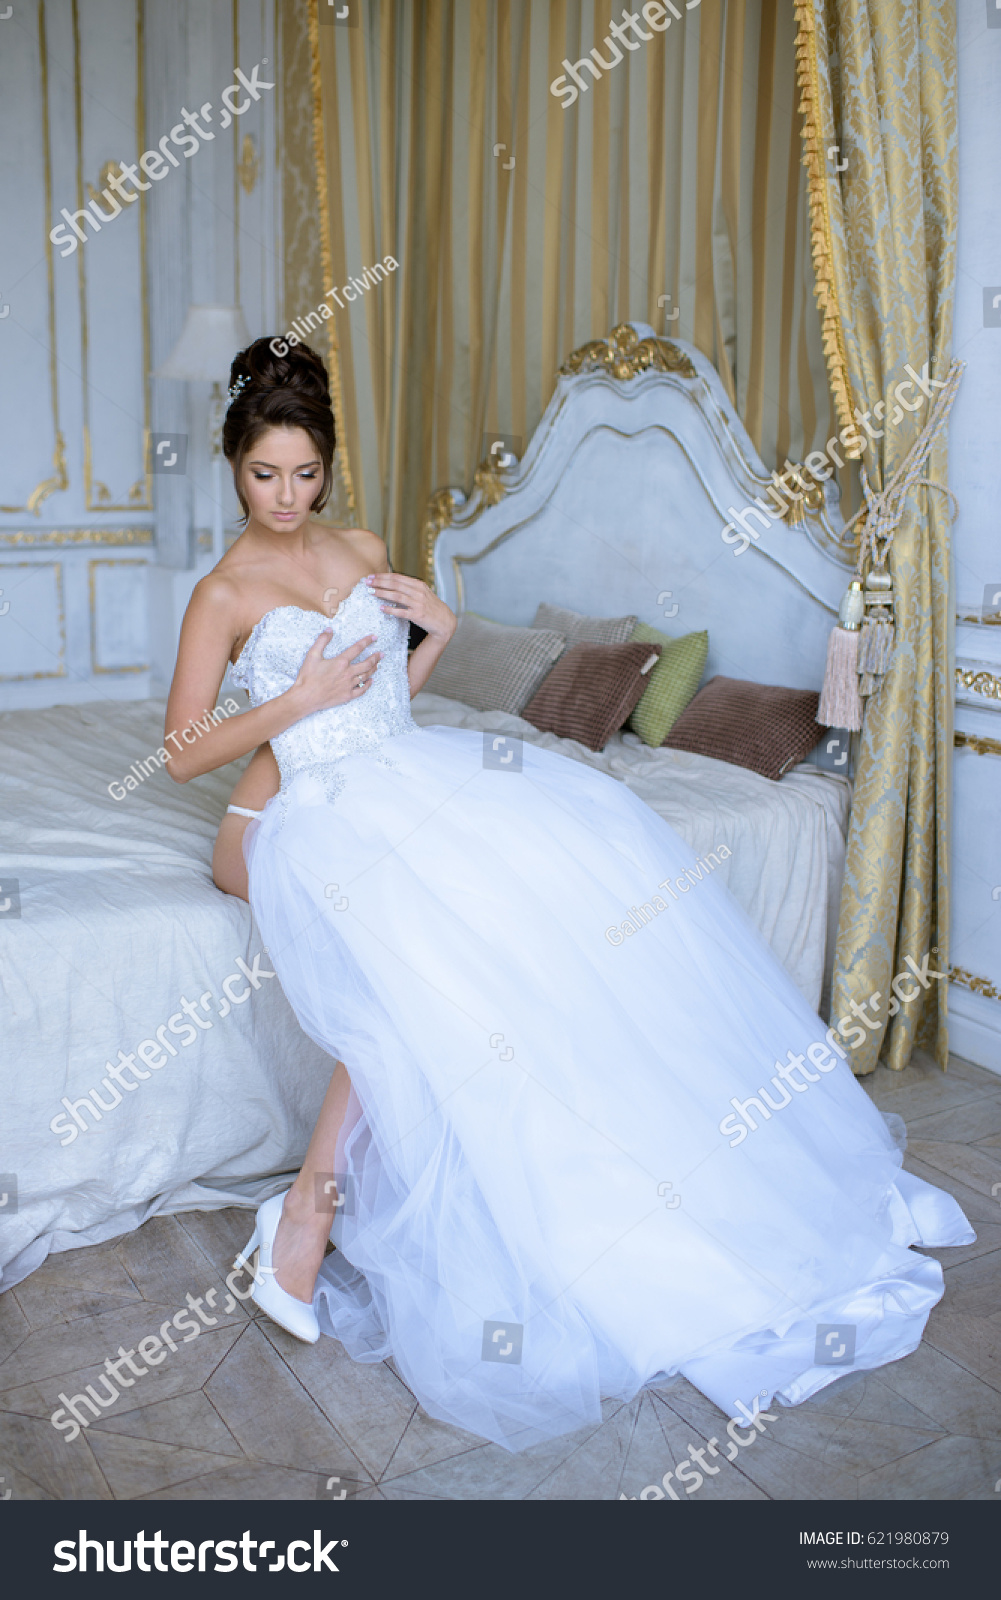 Beautiful Bride Lingerie Wearing Wedding Dress Stock Photo Edit Now